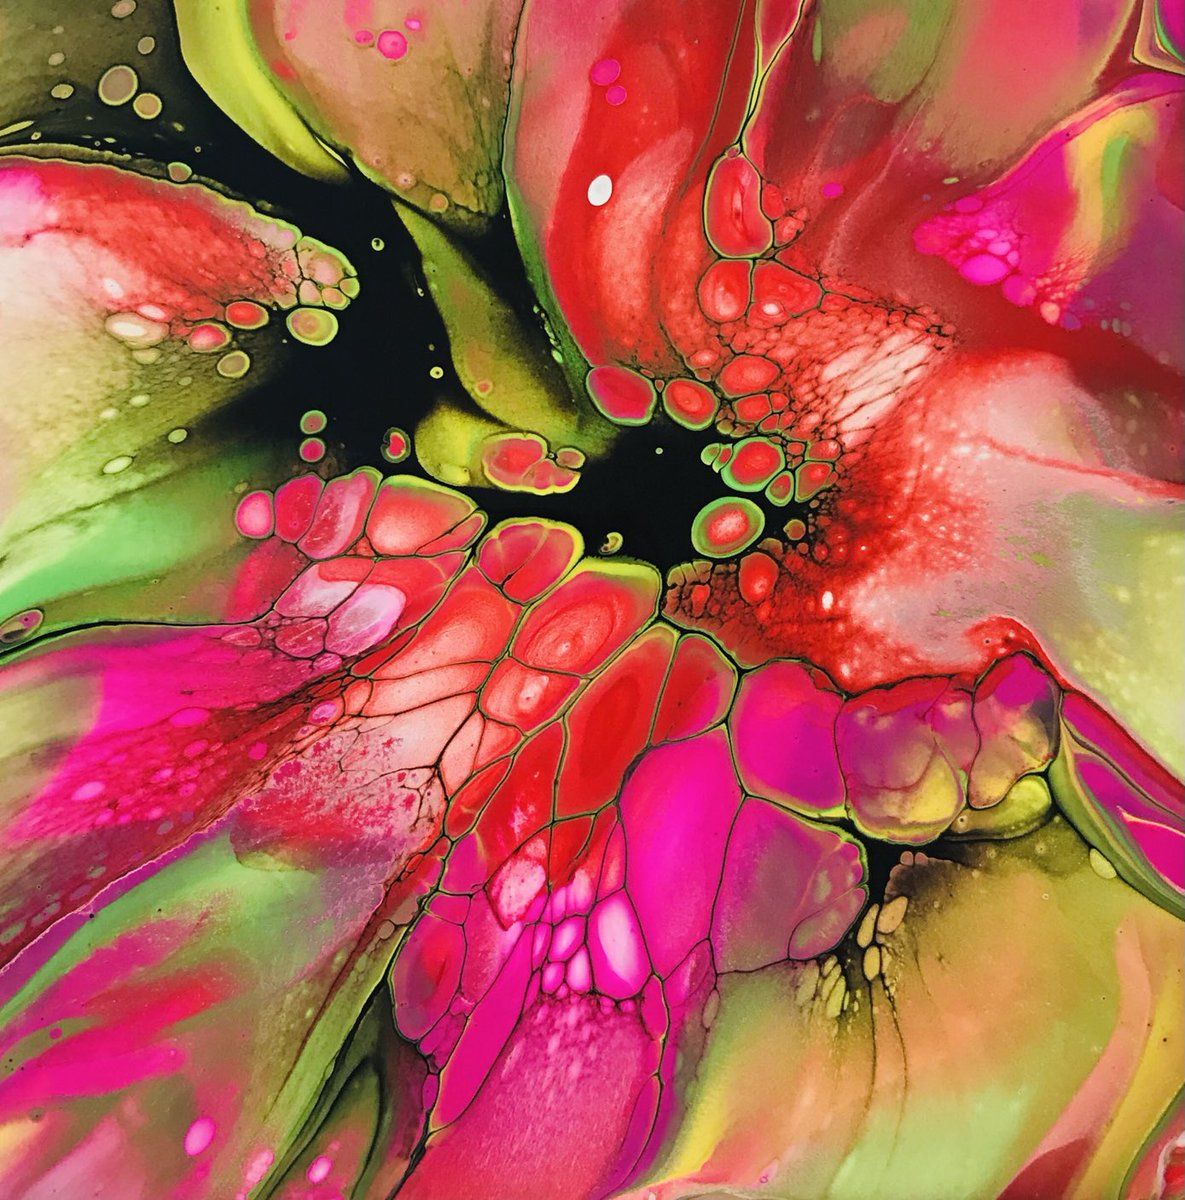 #abstract designs, #multicoloured, #fluid painting, #pouring, #space, #universe, #bubblegum, #love, #galaxy, #lollies, #candy, #sugar, #pink, #disco, #cartoons, #flowers, #adventure, #roses, #valentines, #mothers day, #hearts,